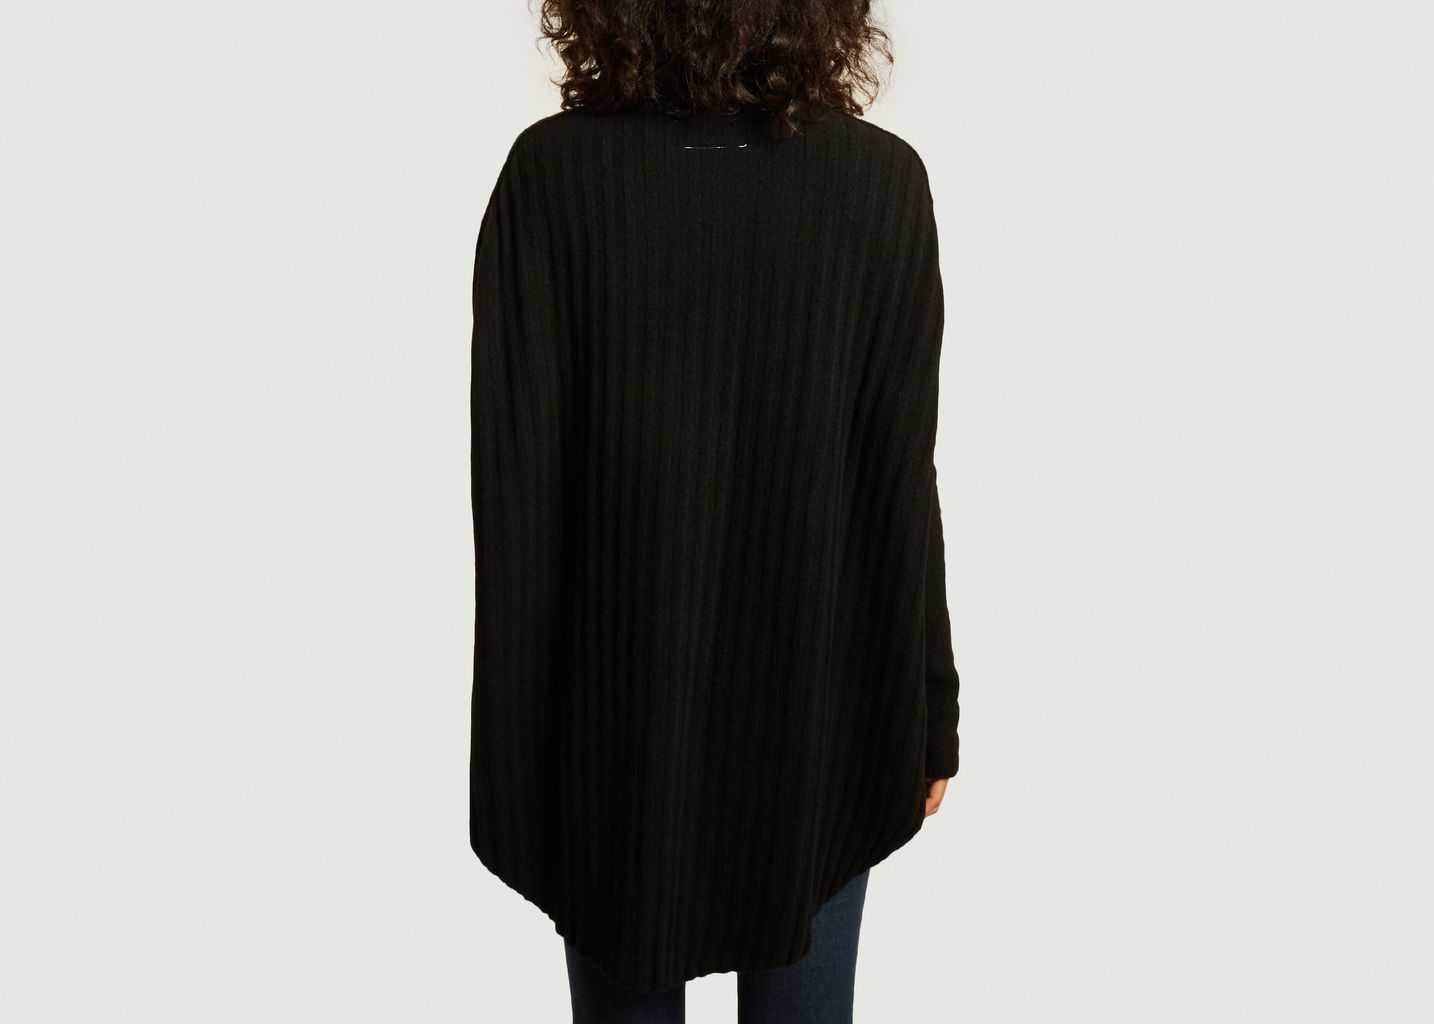 Pull oversize tricot MM6 | The North Face - MM6 Maison Margiela